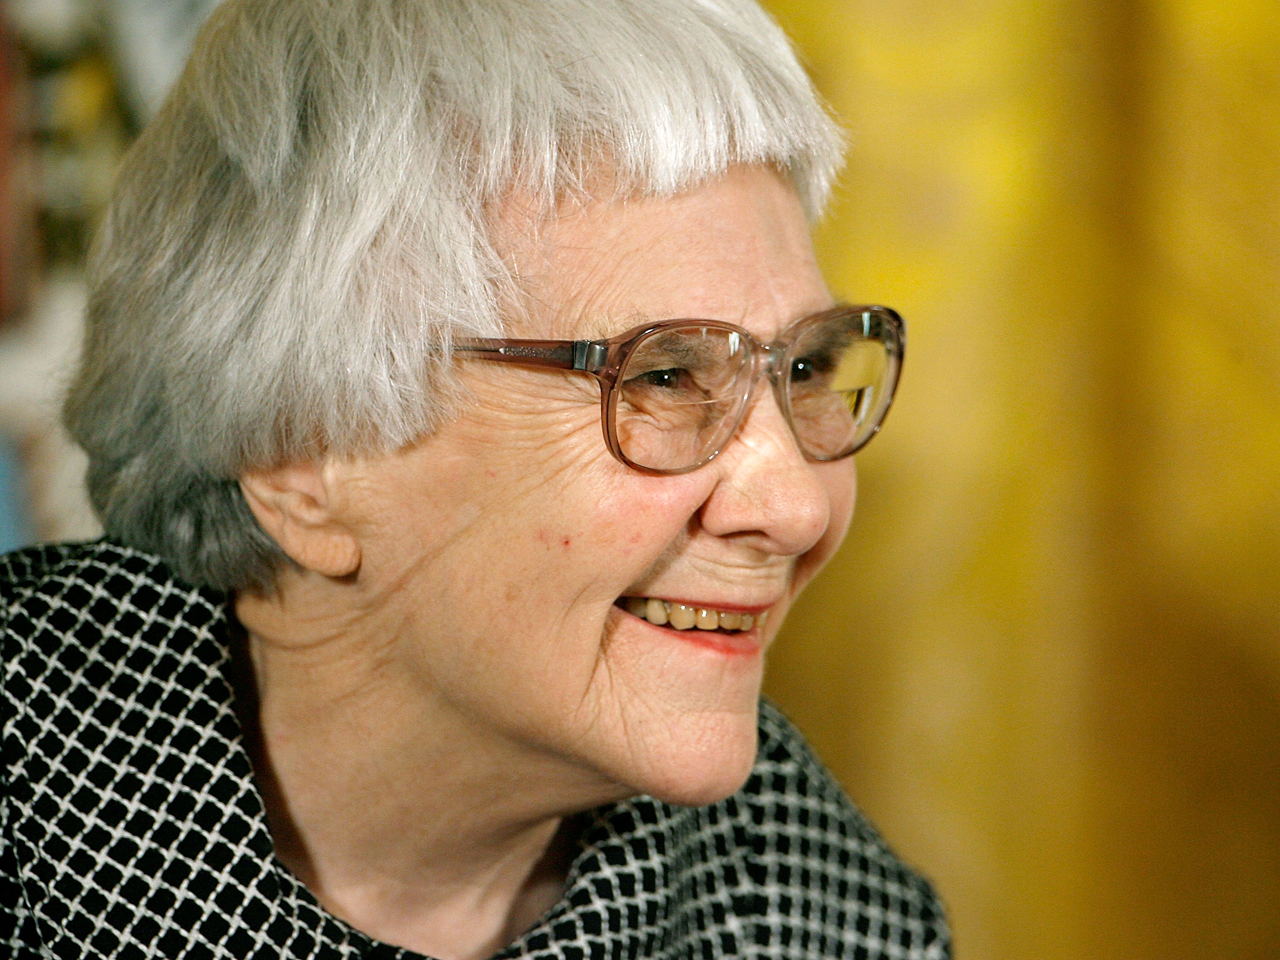 harper lee s new novel go set a watchman flips to kill a harper lee s new novel go set a watchman flips to kill a mockingbird themes cbs news